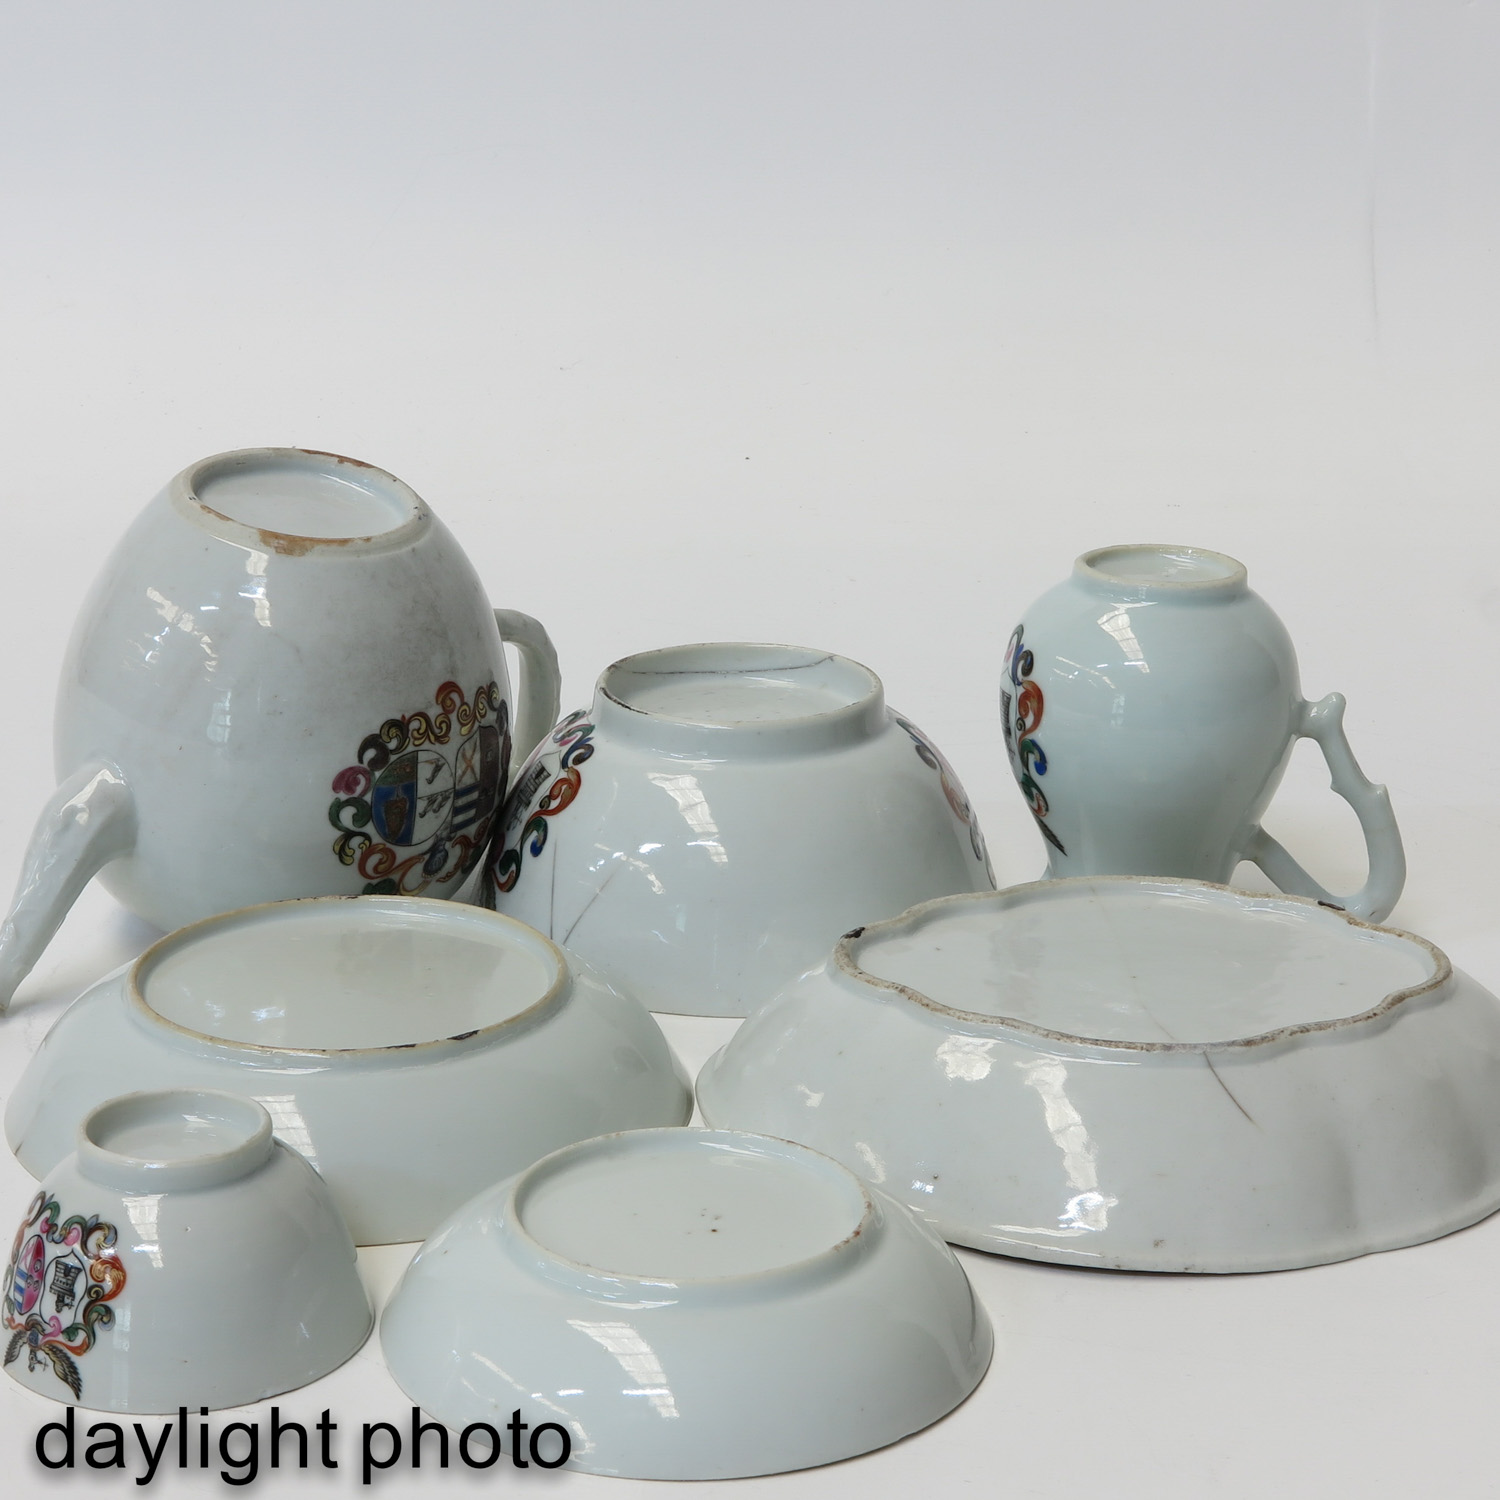 A Collection of Chine de Commande - Image 10 of 10